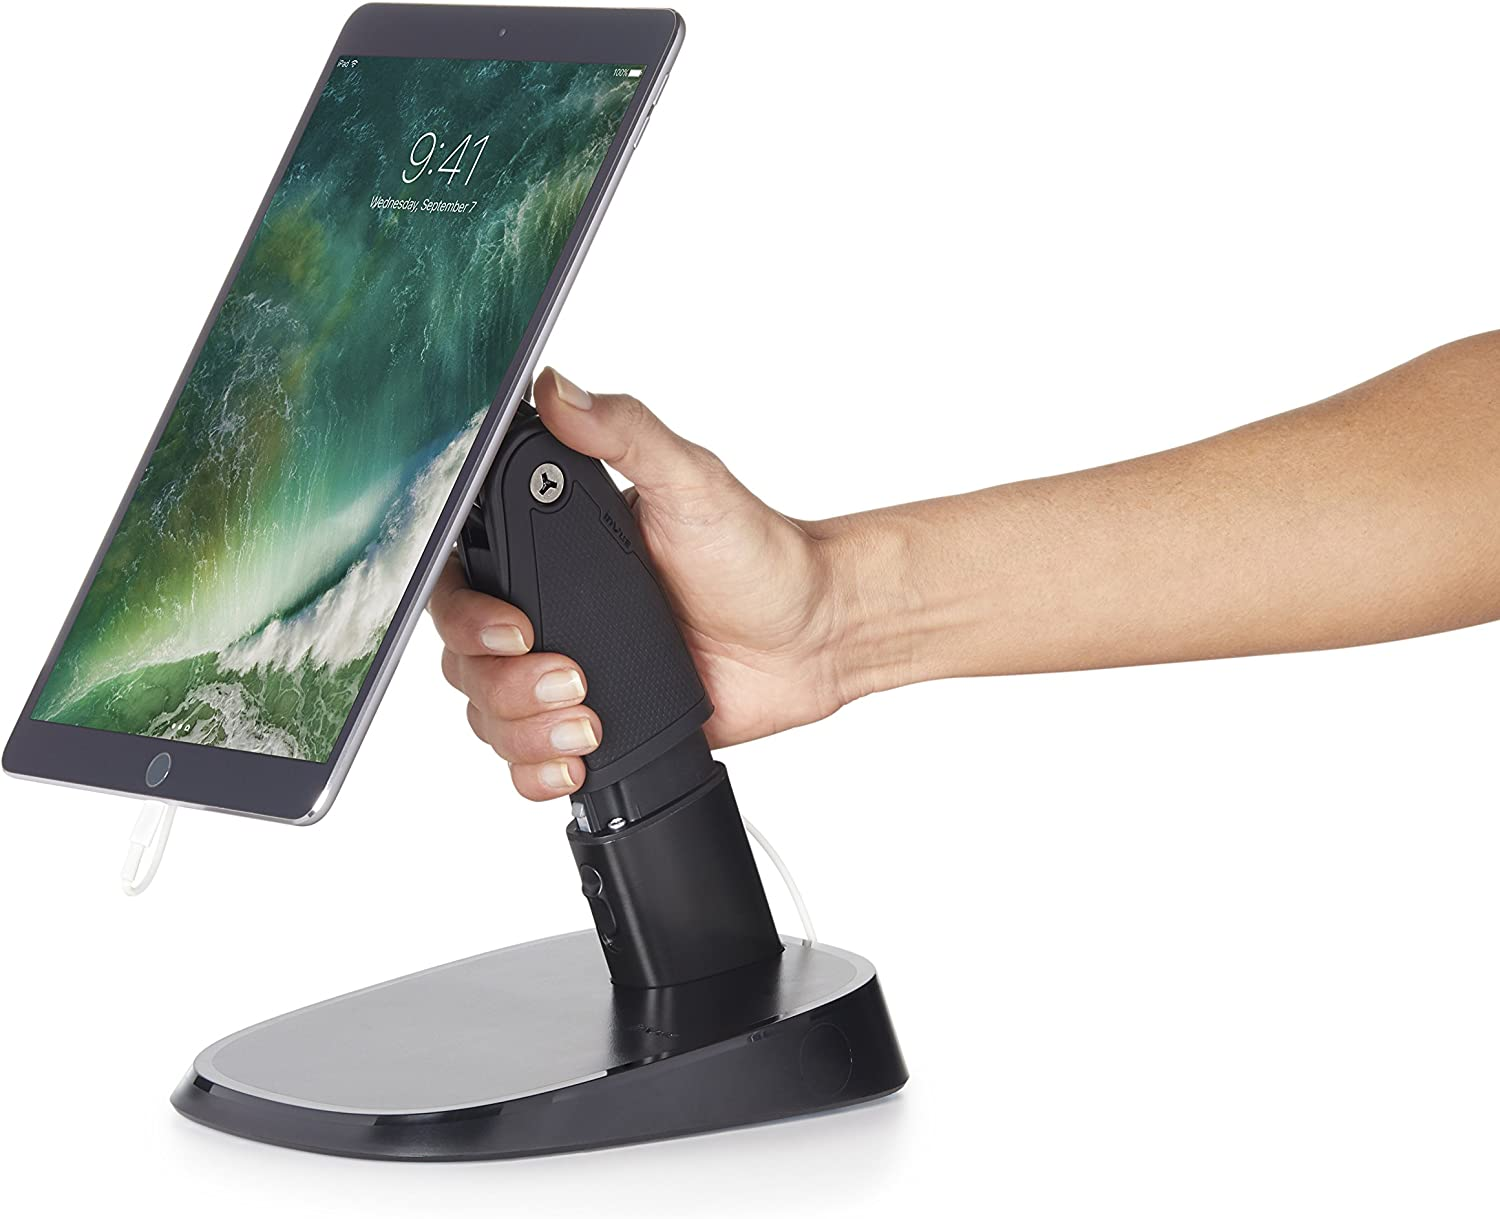 Durable New Shipping Free Portable Super popular specialty store Tablet Stand Holder Business InVue for Use.